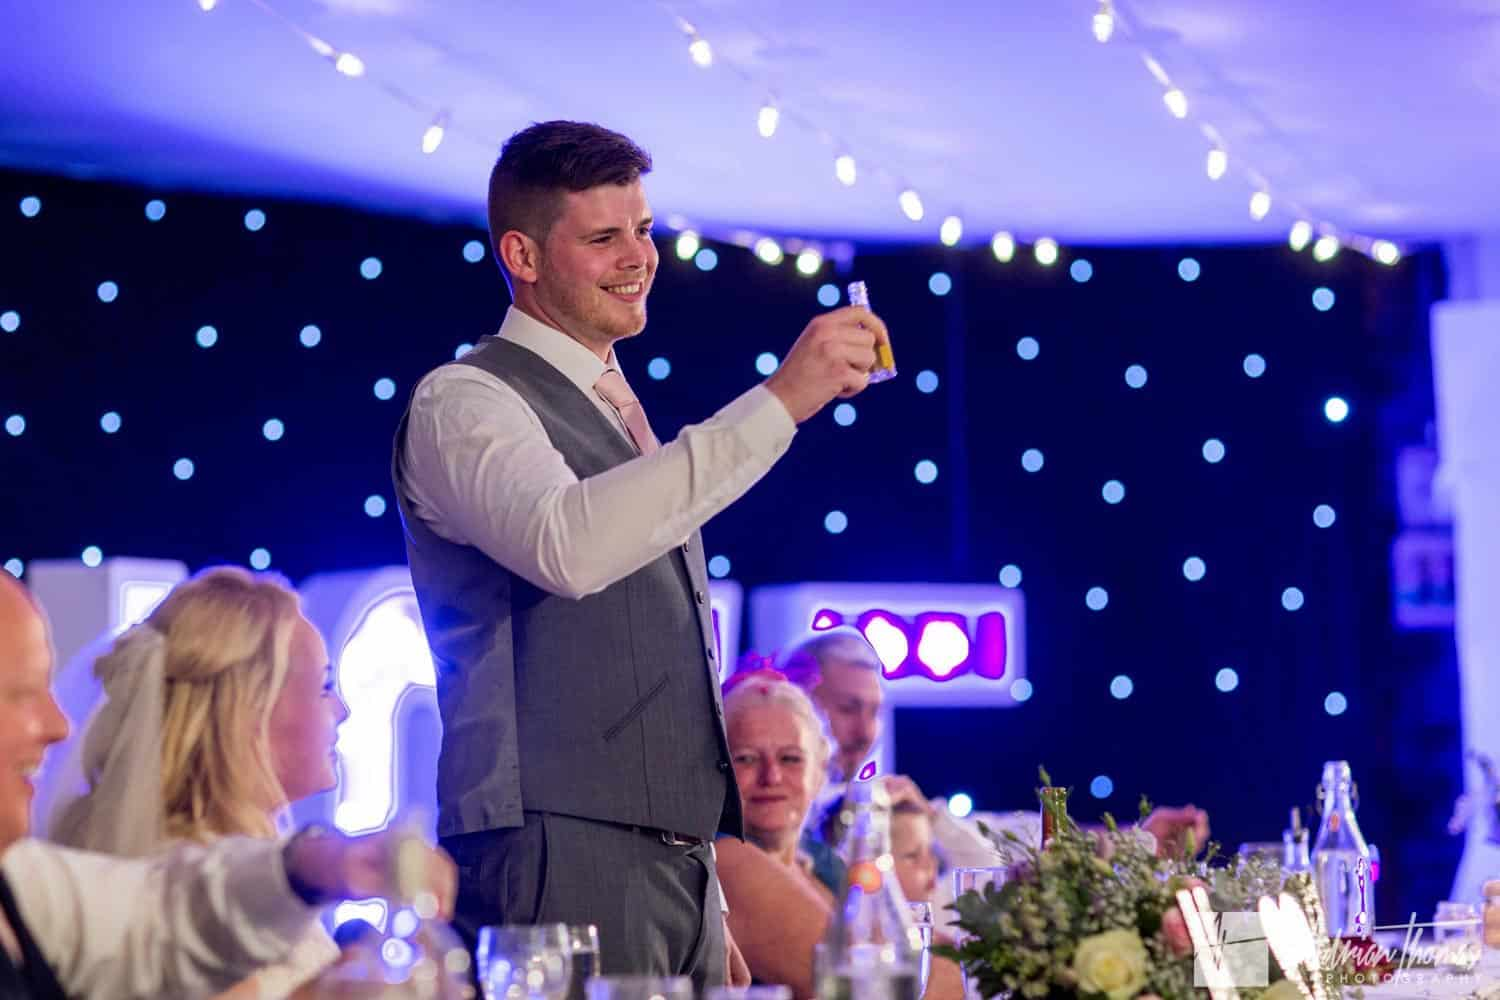 Groom toasting guests and bride.